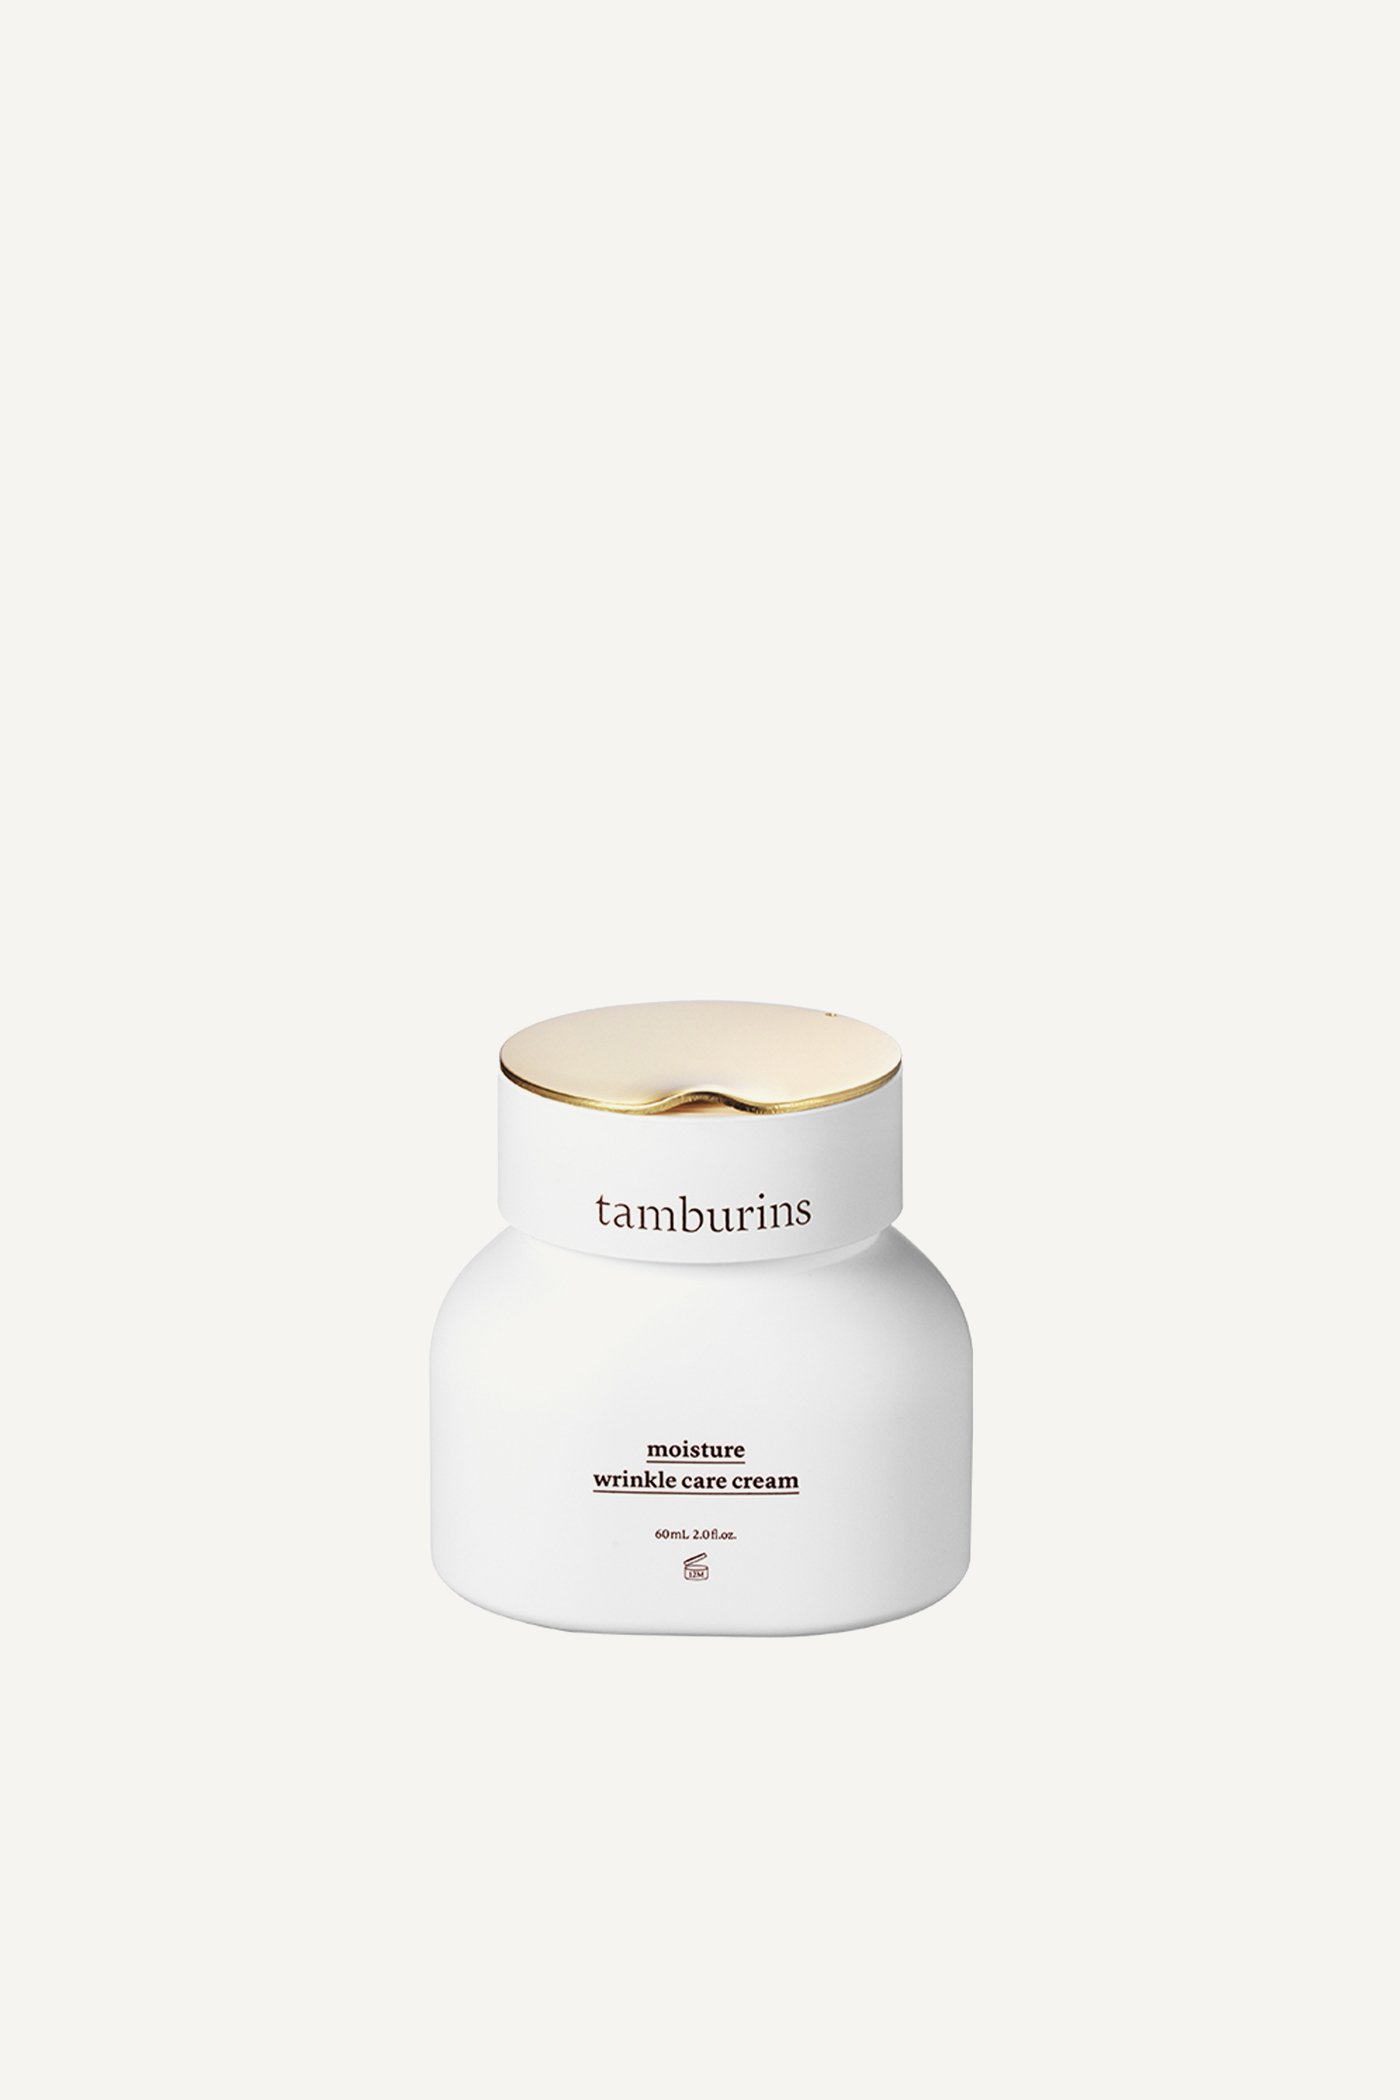 Tamburins Dance Enhance Cream 2.0